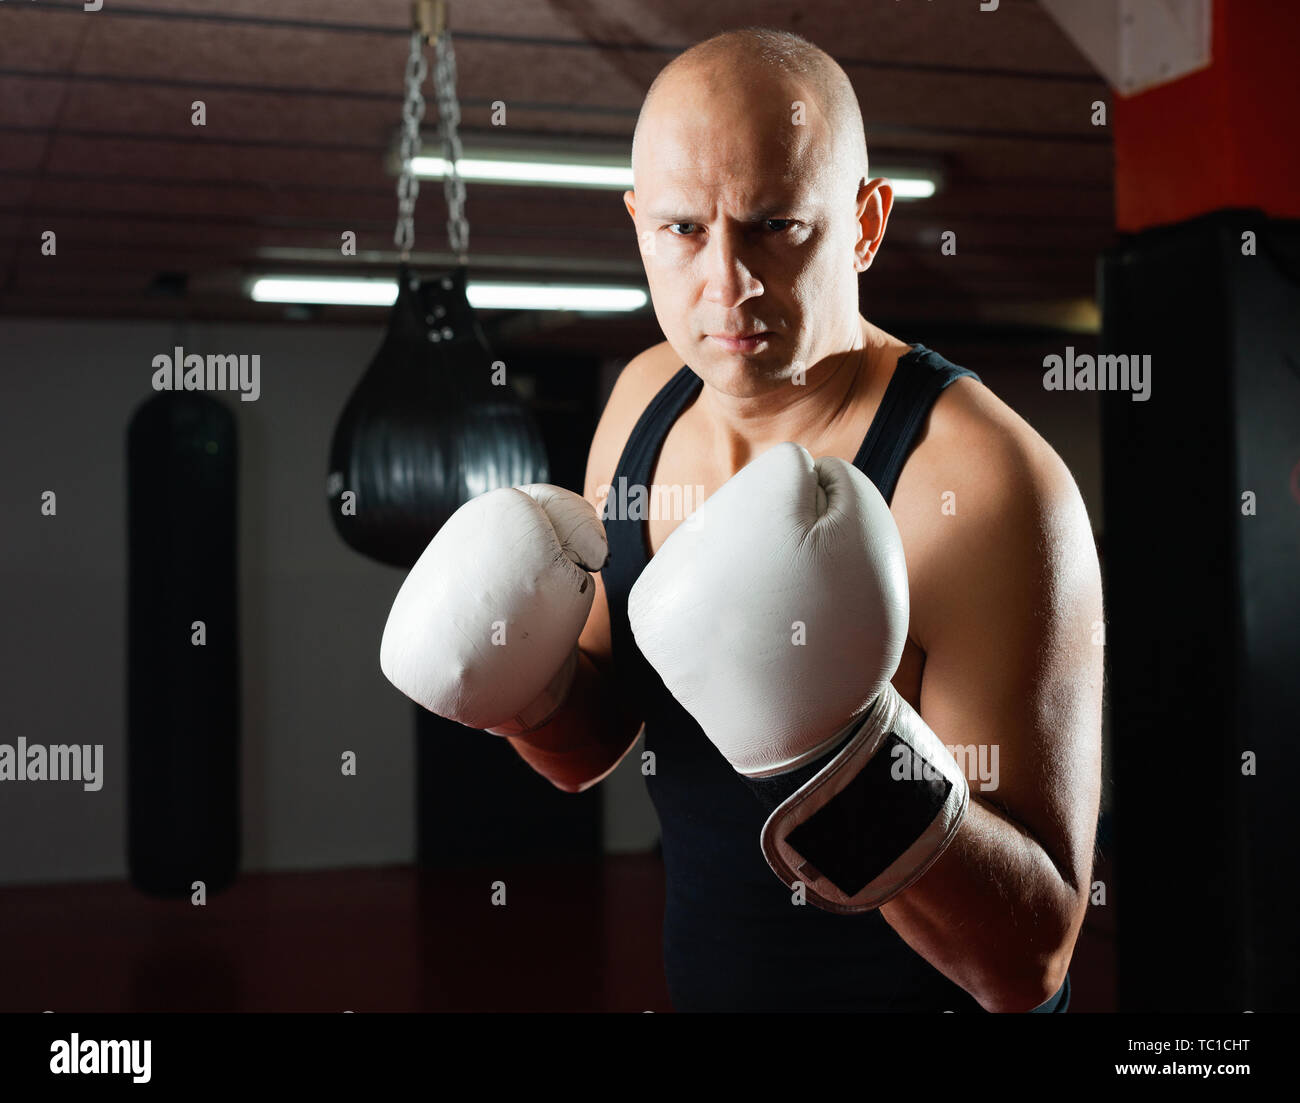 Potrait of  smiling man boxer who is training in gym Stock Photo